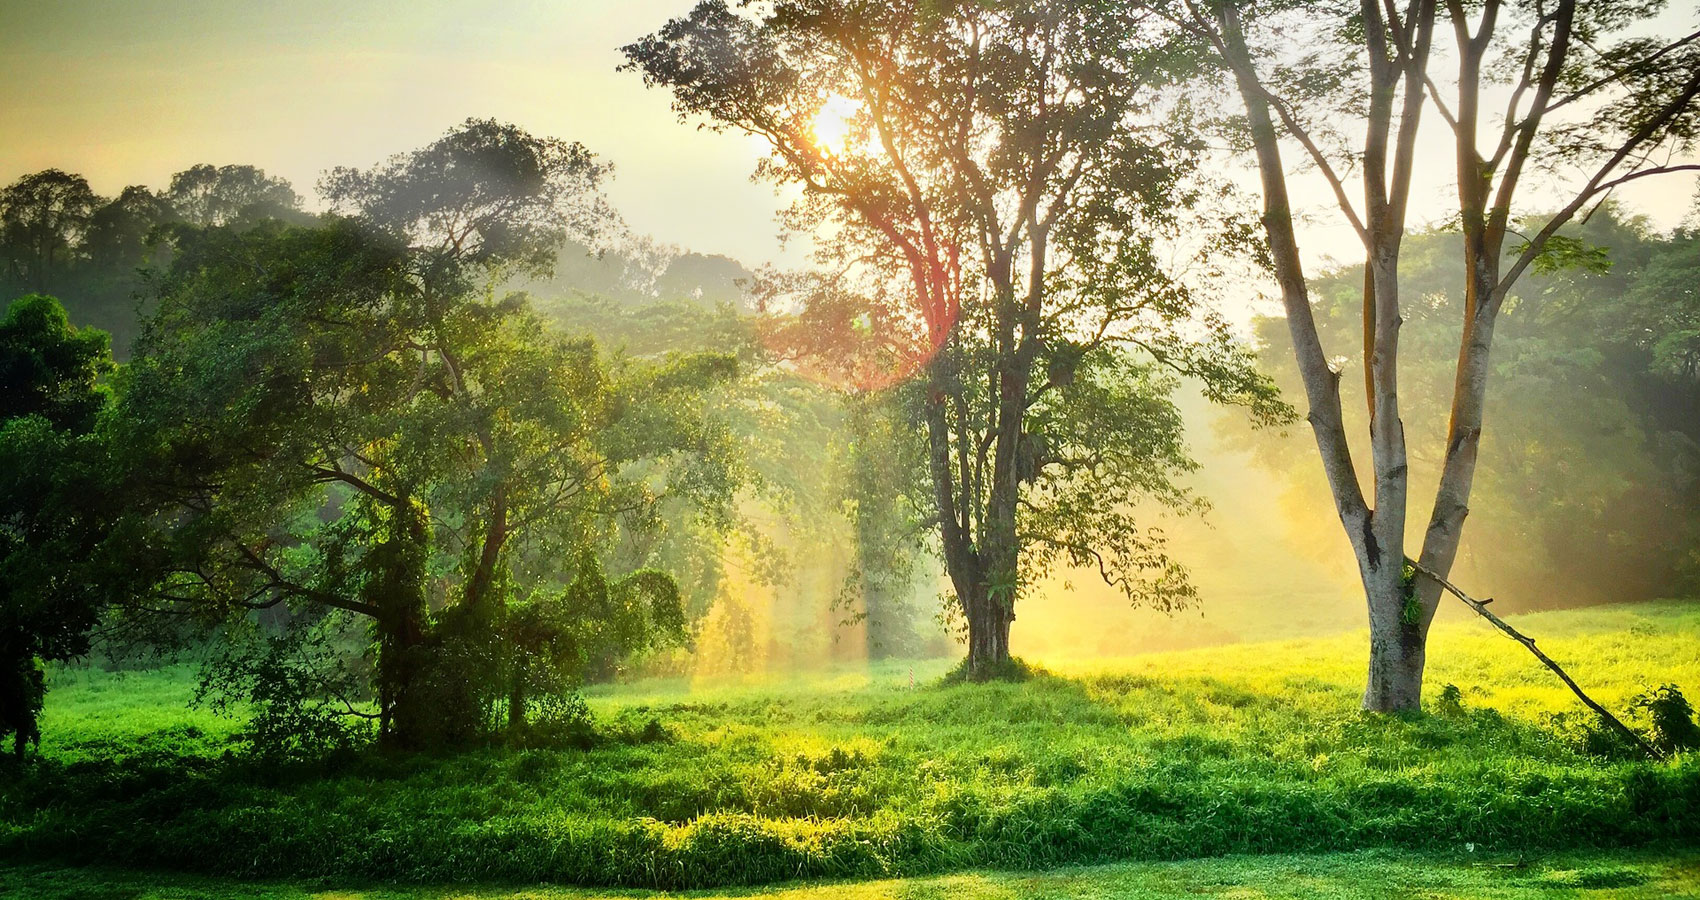 The Morning written by Daniel S. Liuzzi at Spillwords.com